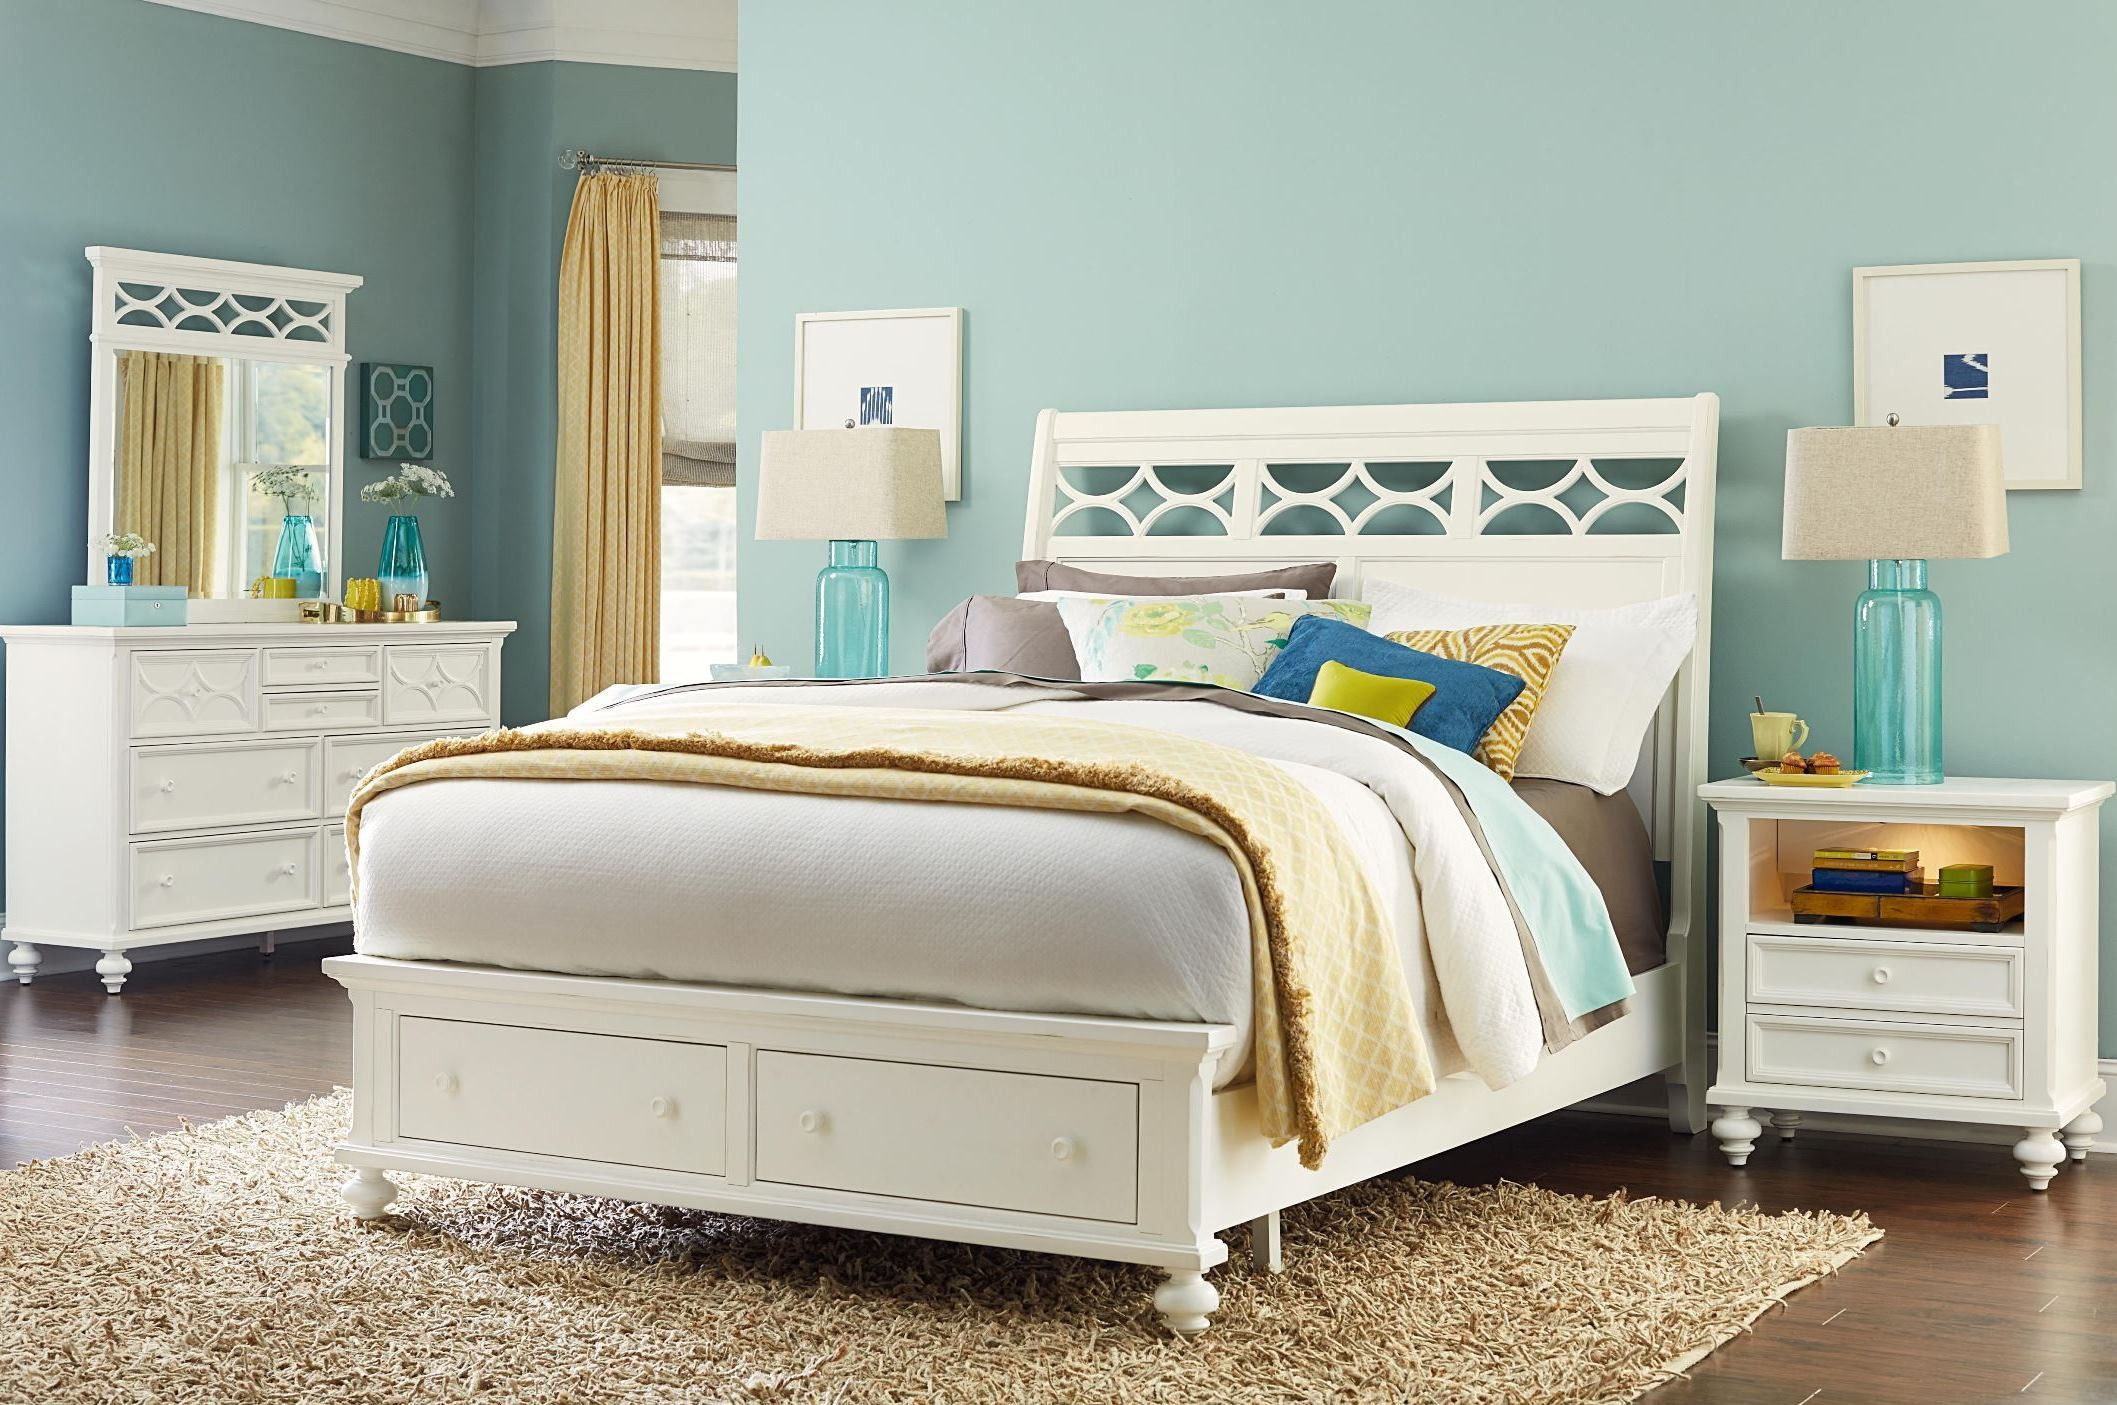 Lynn haven soft dover white sleigh storage bedroom set for White bedroom set with storage